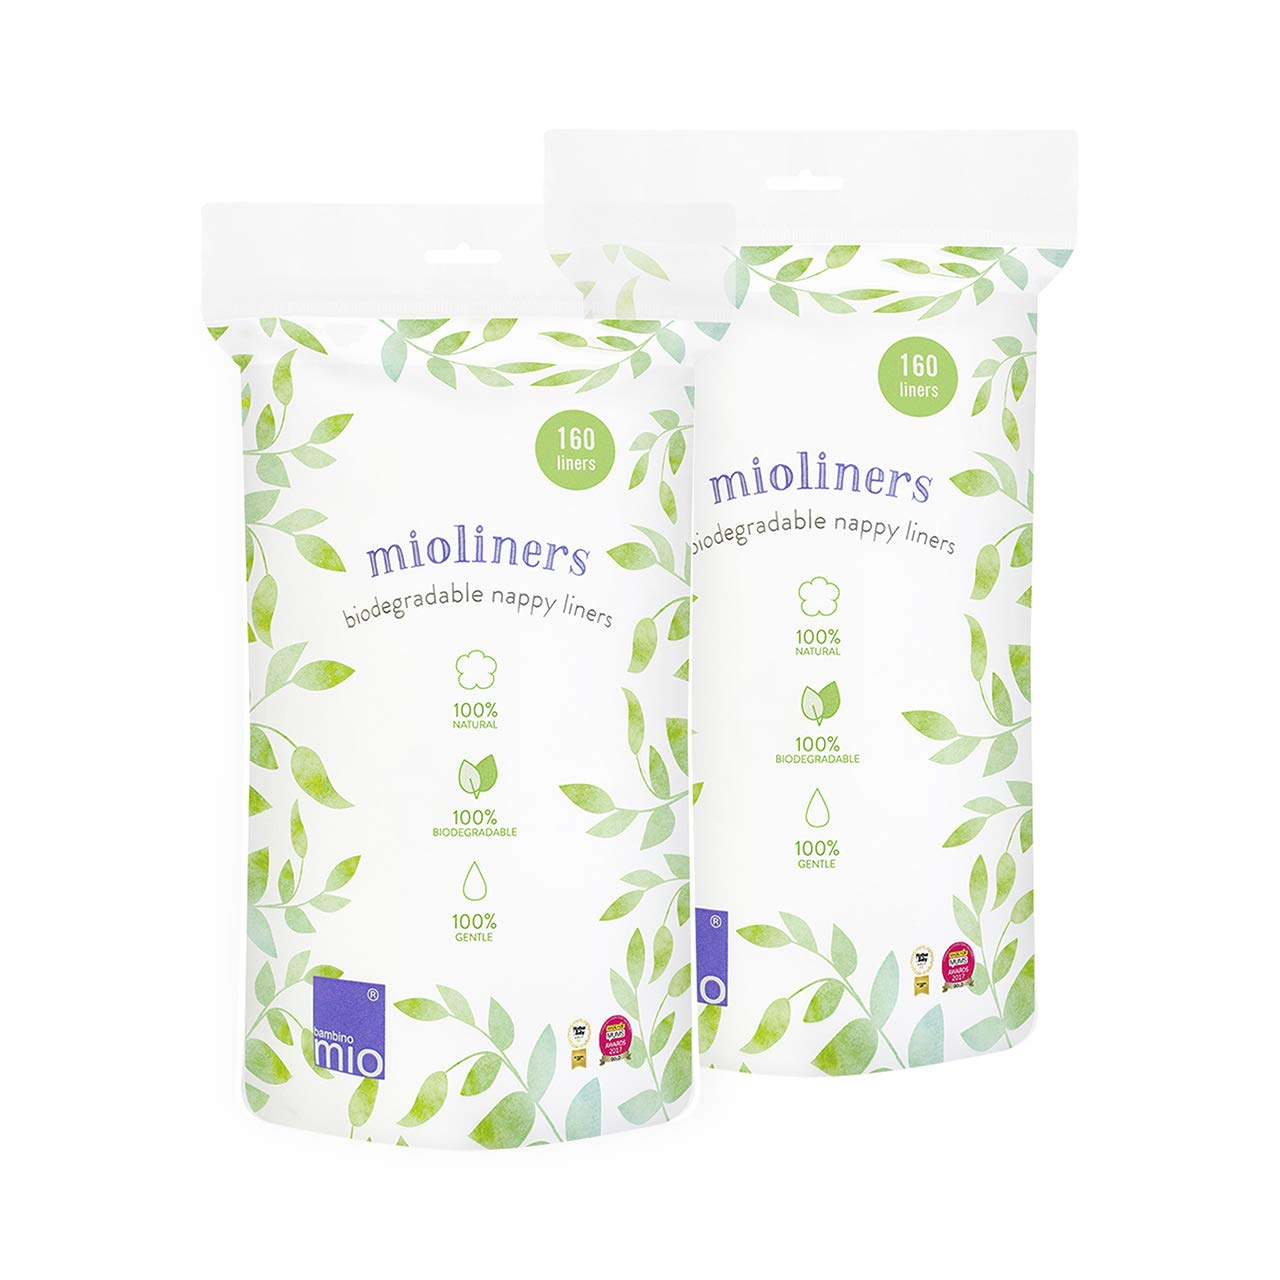 Bambino Mio, Mioliners (Biodegradable Diaper Liners), 2 Pack